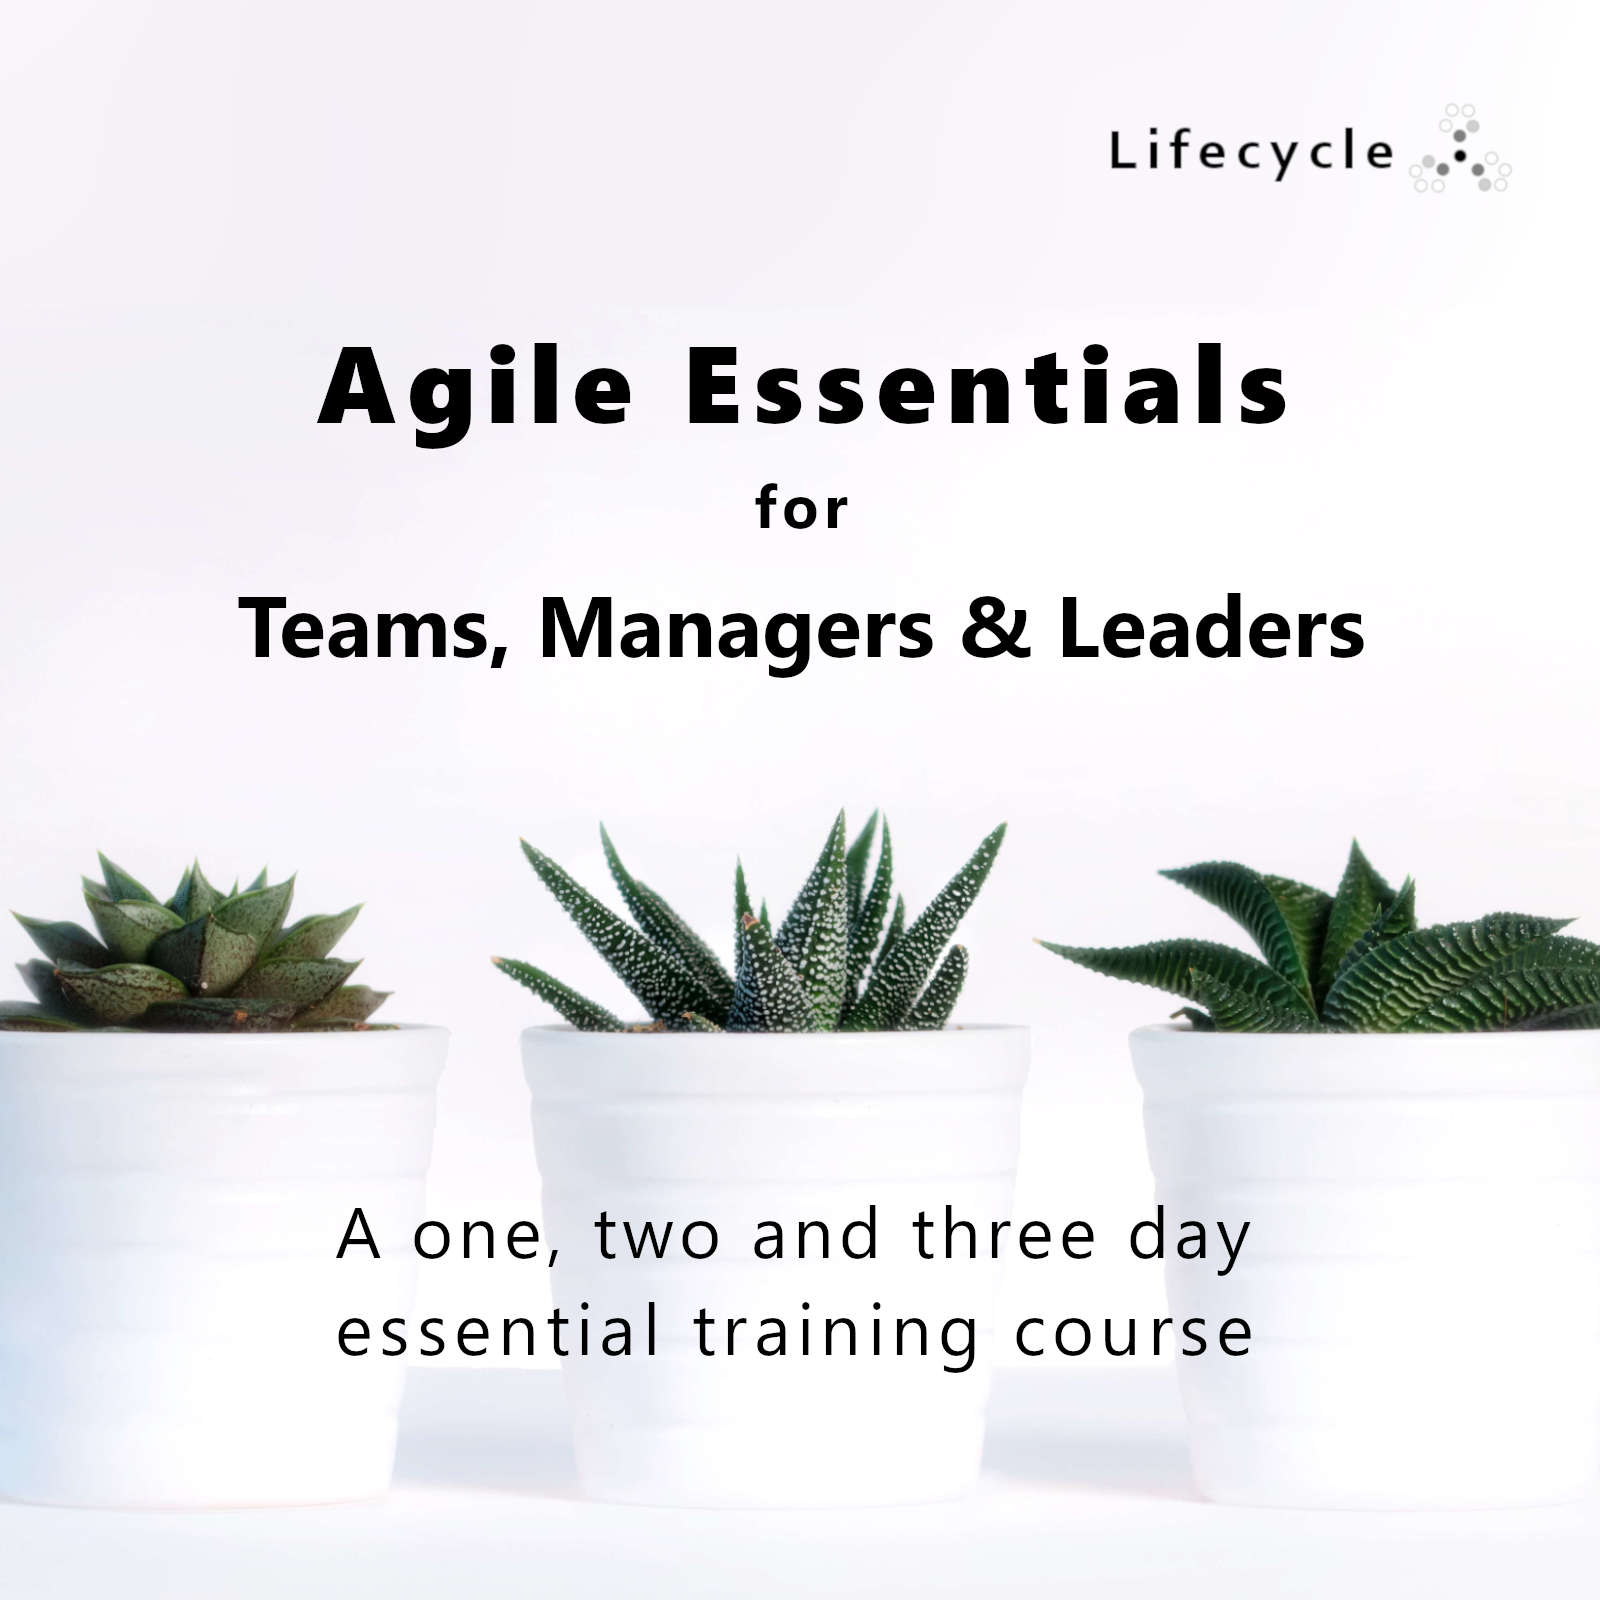 Agile Essentials Training for Teams, Managers & Leaders | Lifecycle